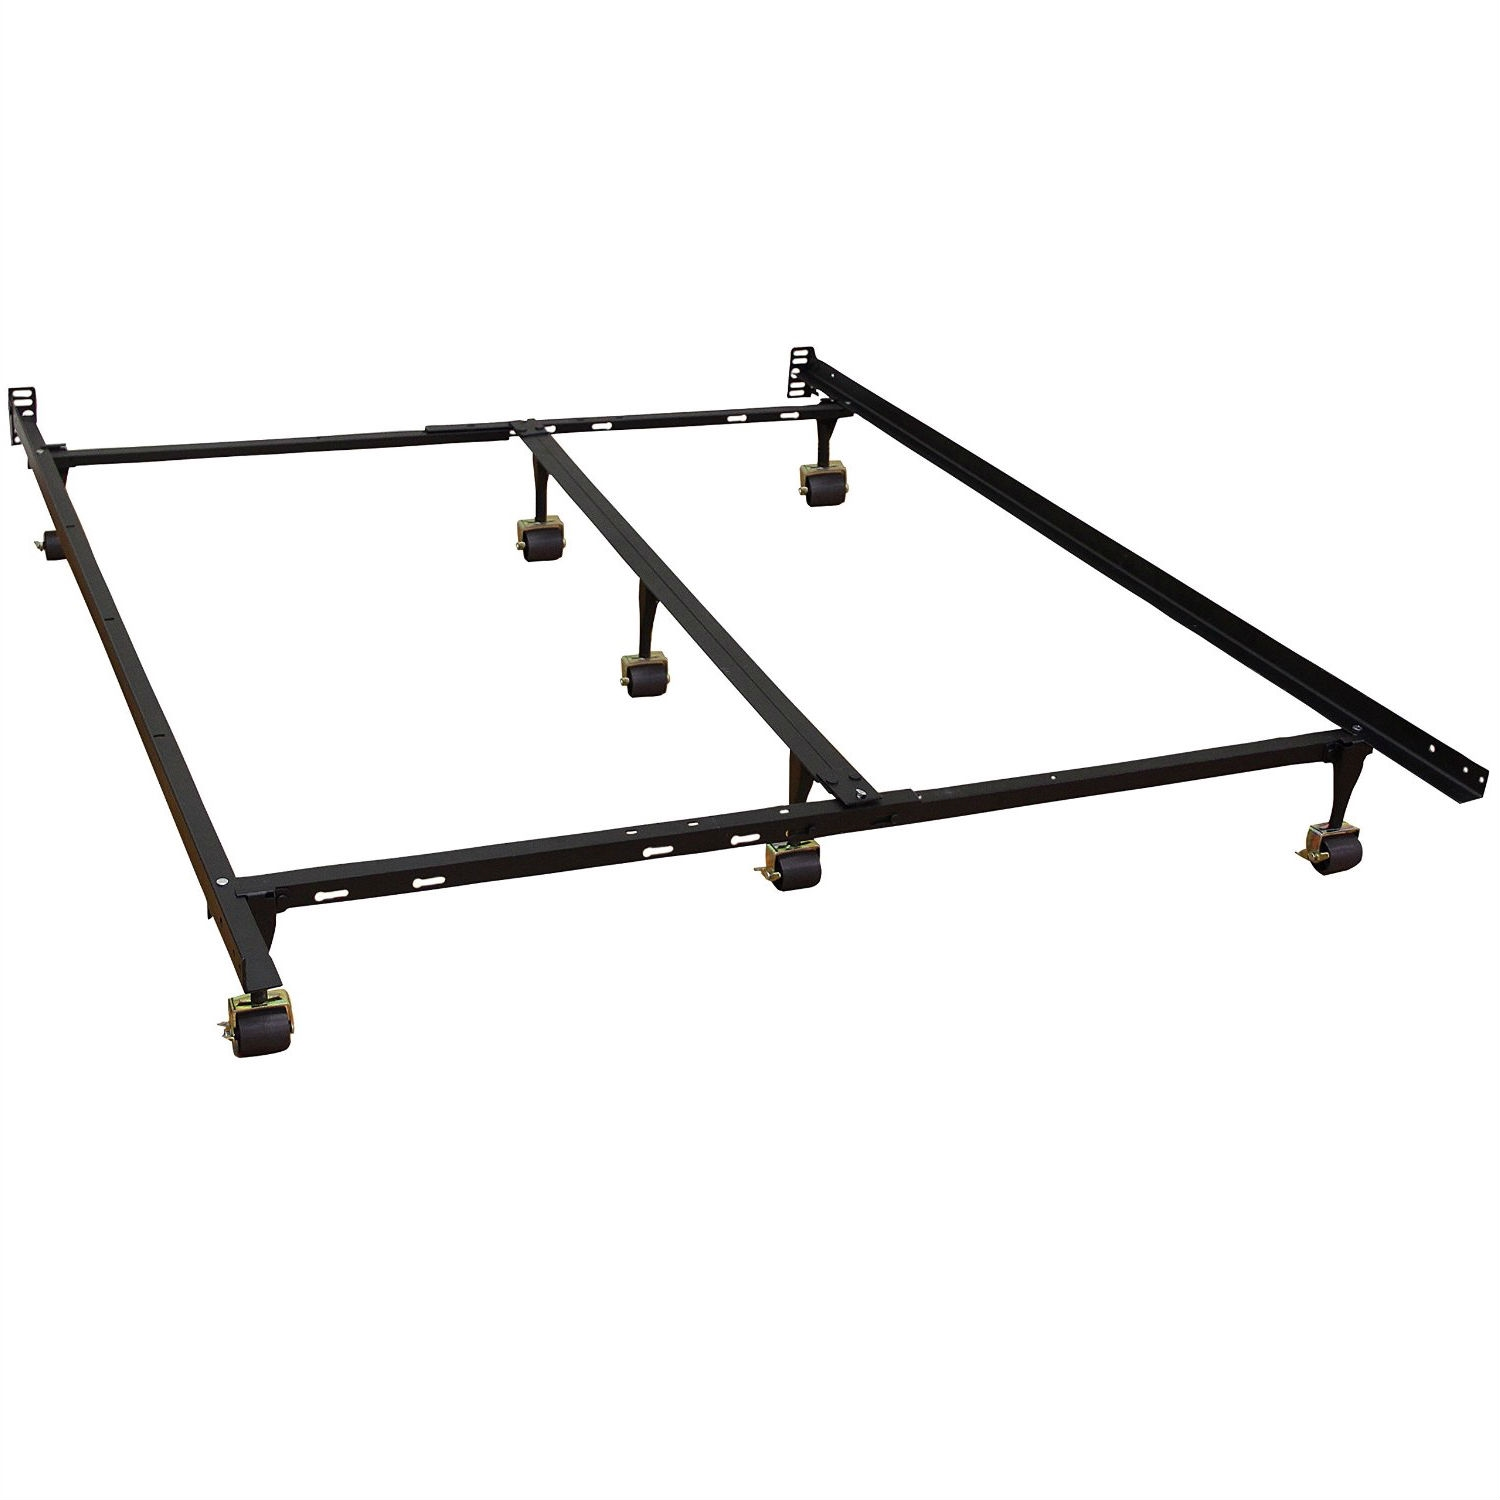 California King Size Metal Bed Frame With 7 Legs And Locking Rug Rollers Wheels Fastfurnishings Com